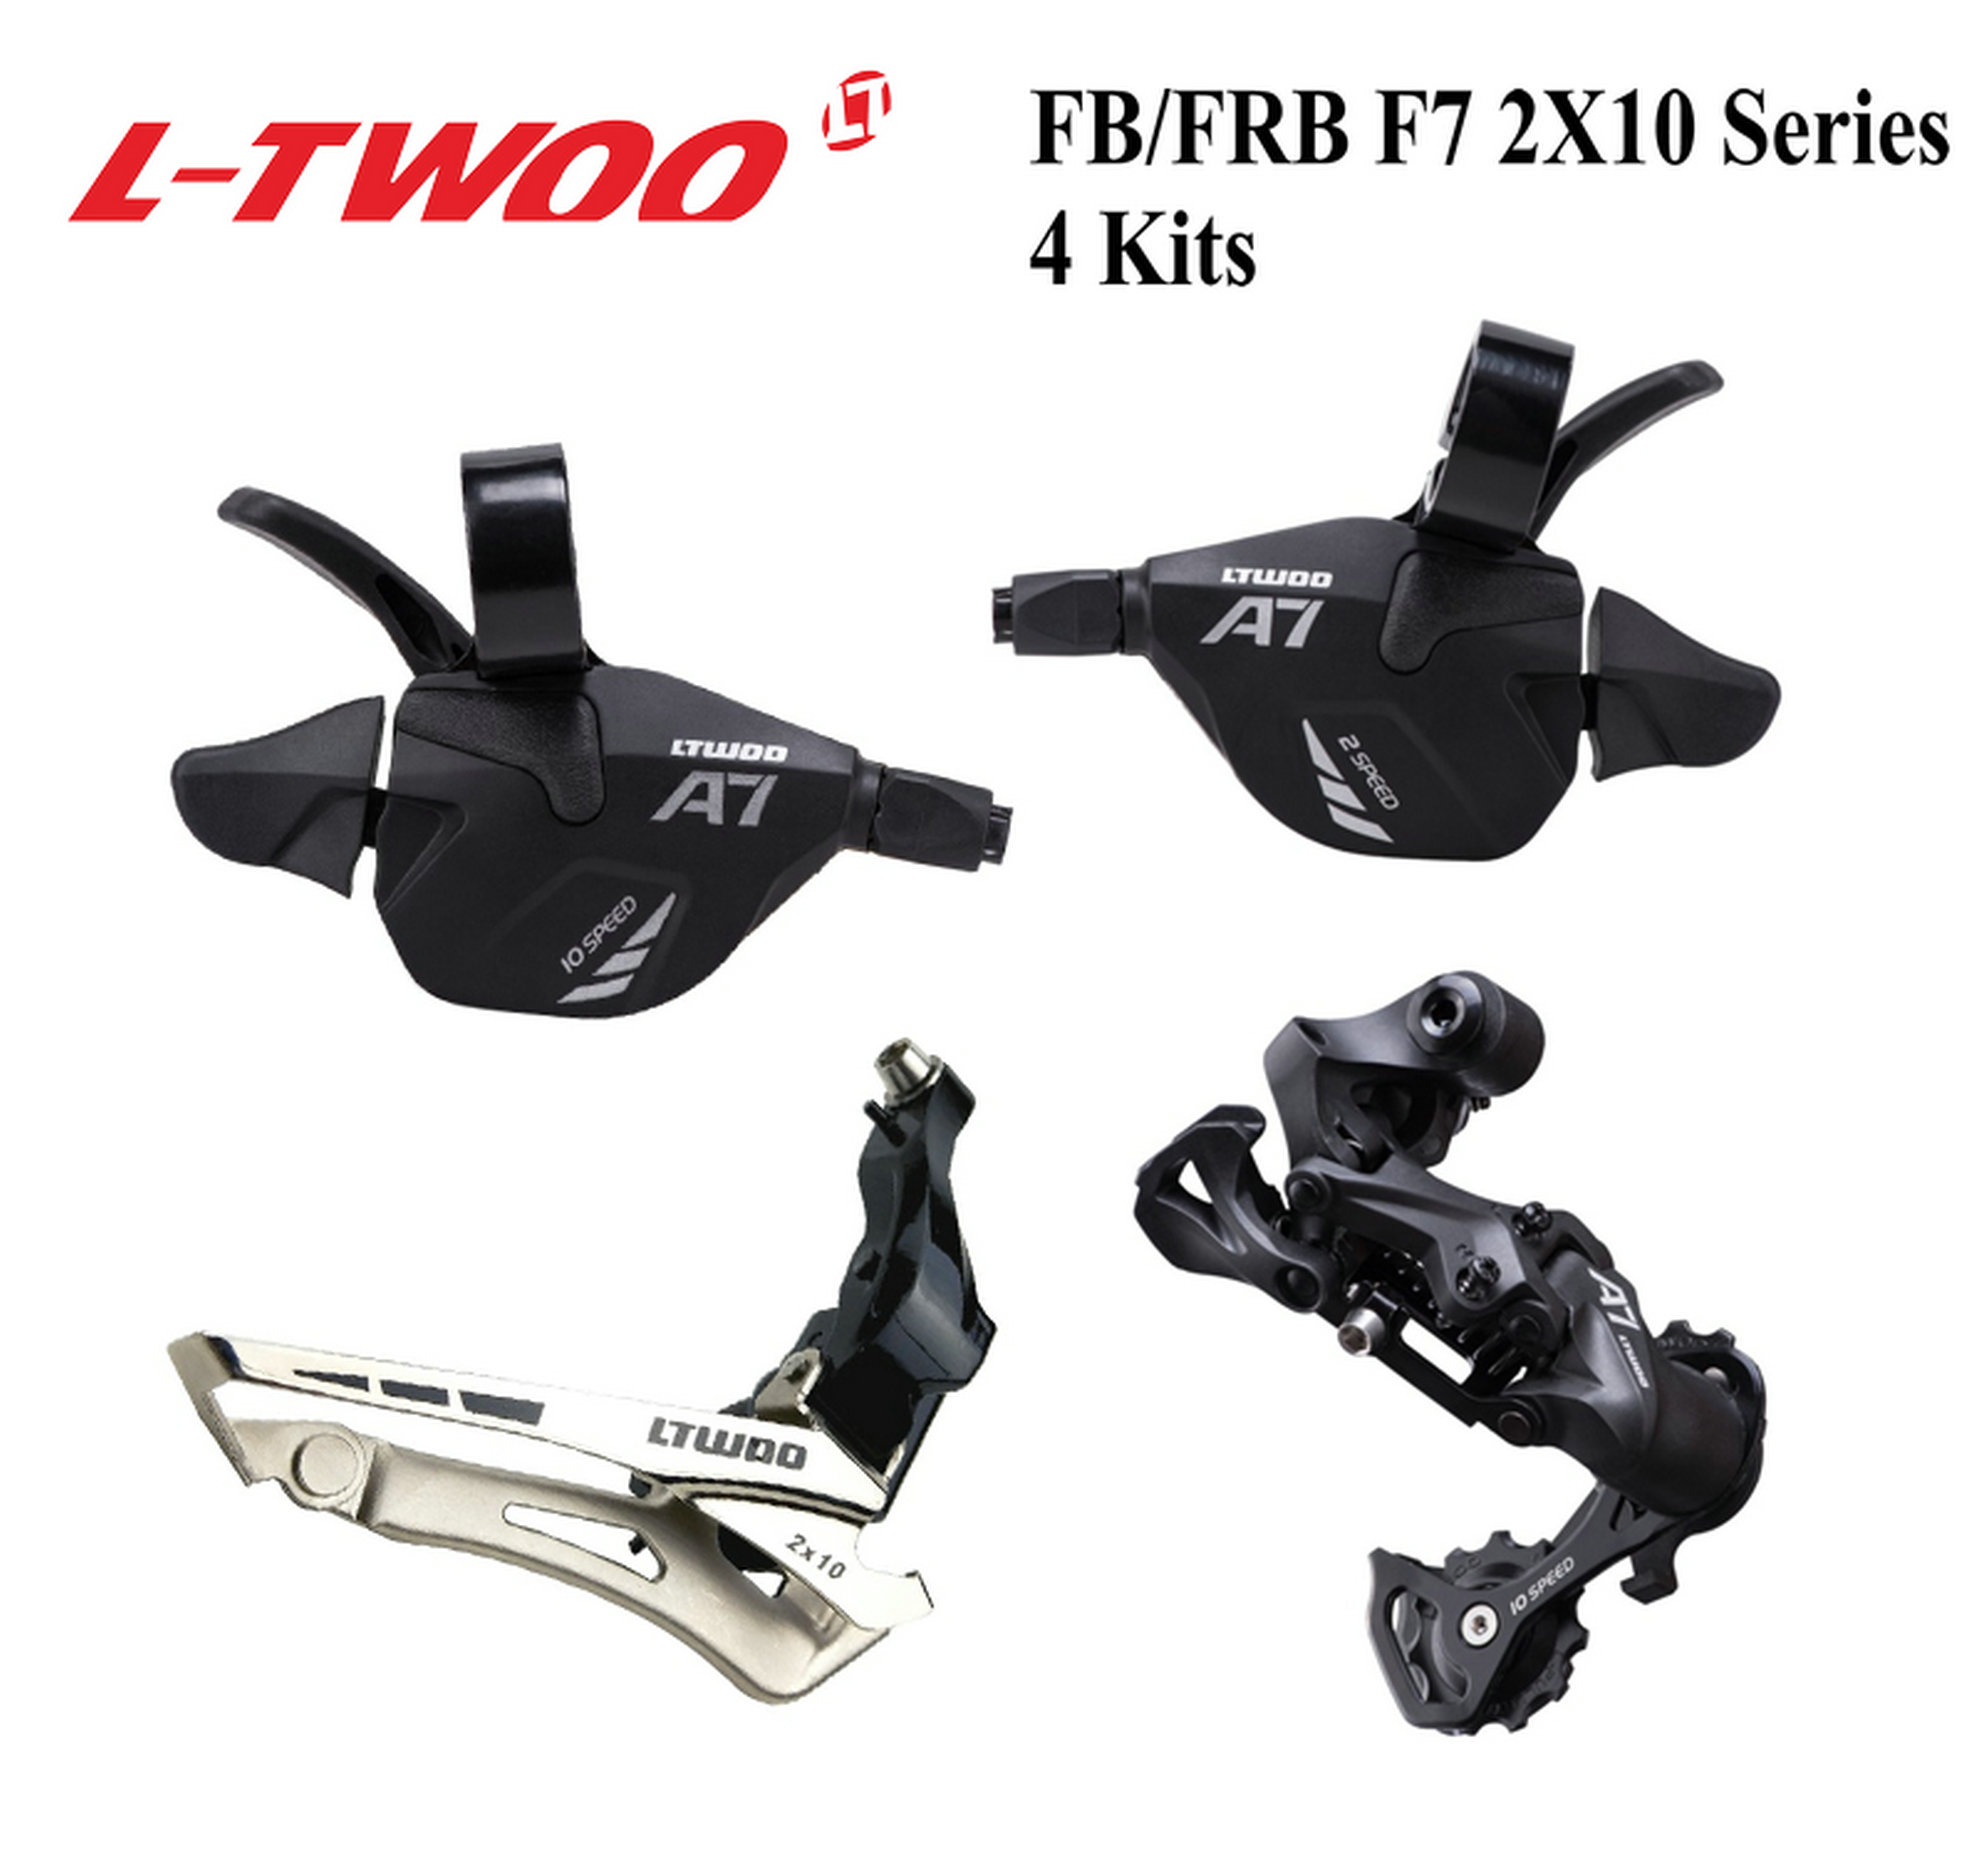 LTWOO <font><b>Groupset</b></font> F7 20S Folding bike series <font><b>2x10</b></font> derailleur <font><b>groupset</b></font> shift lever derailleur front and rear, X9, X7, GX,Spare Parts image